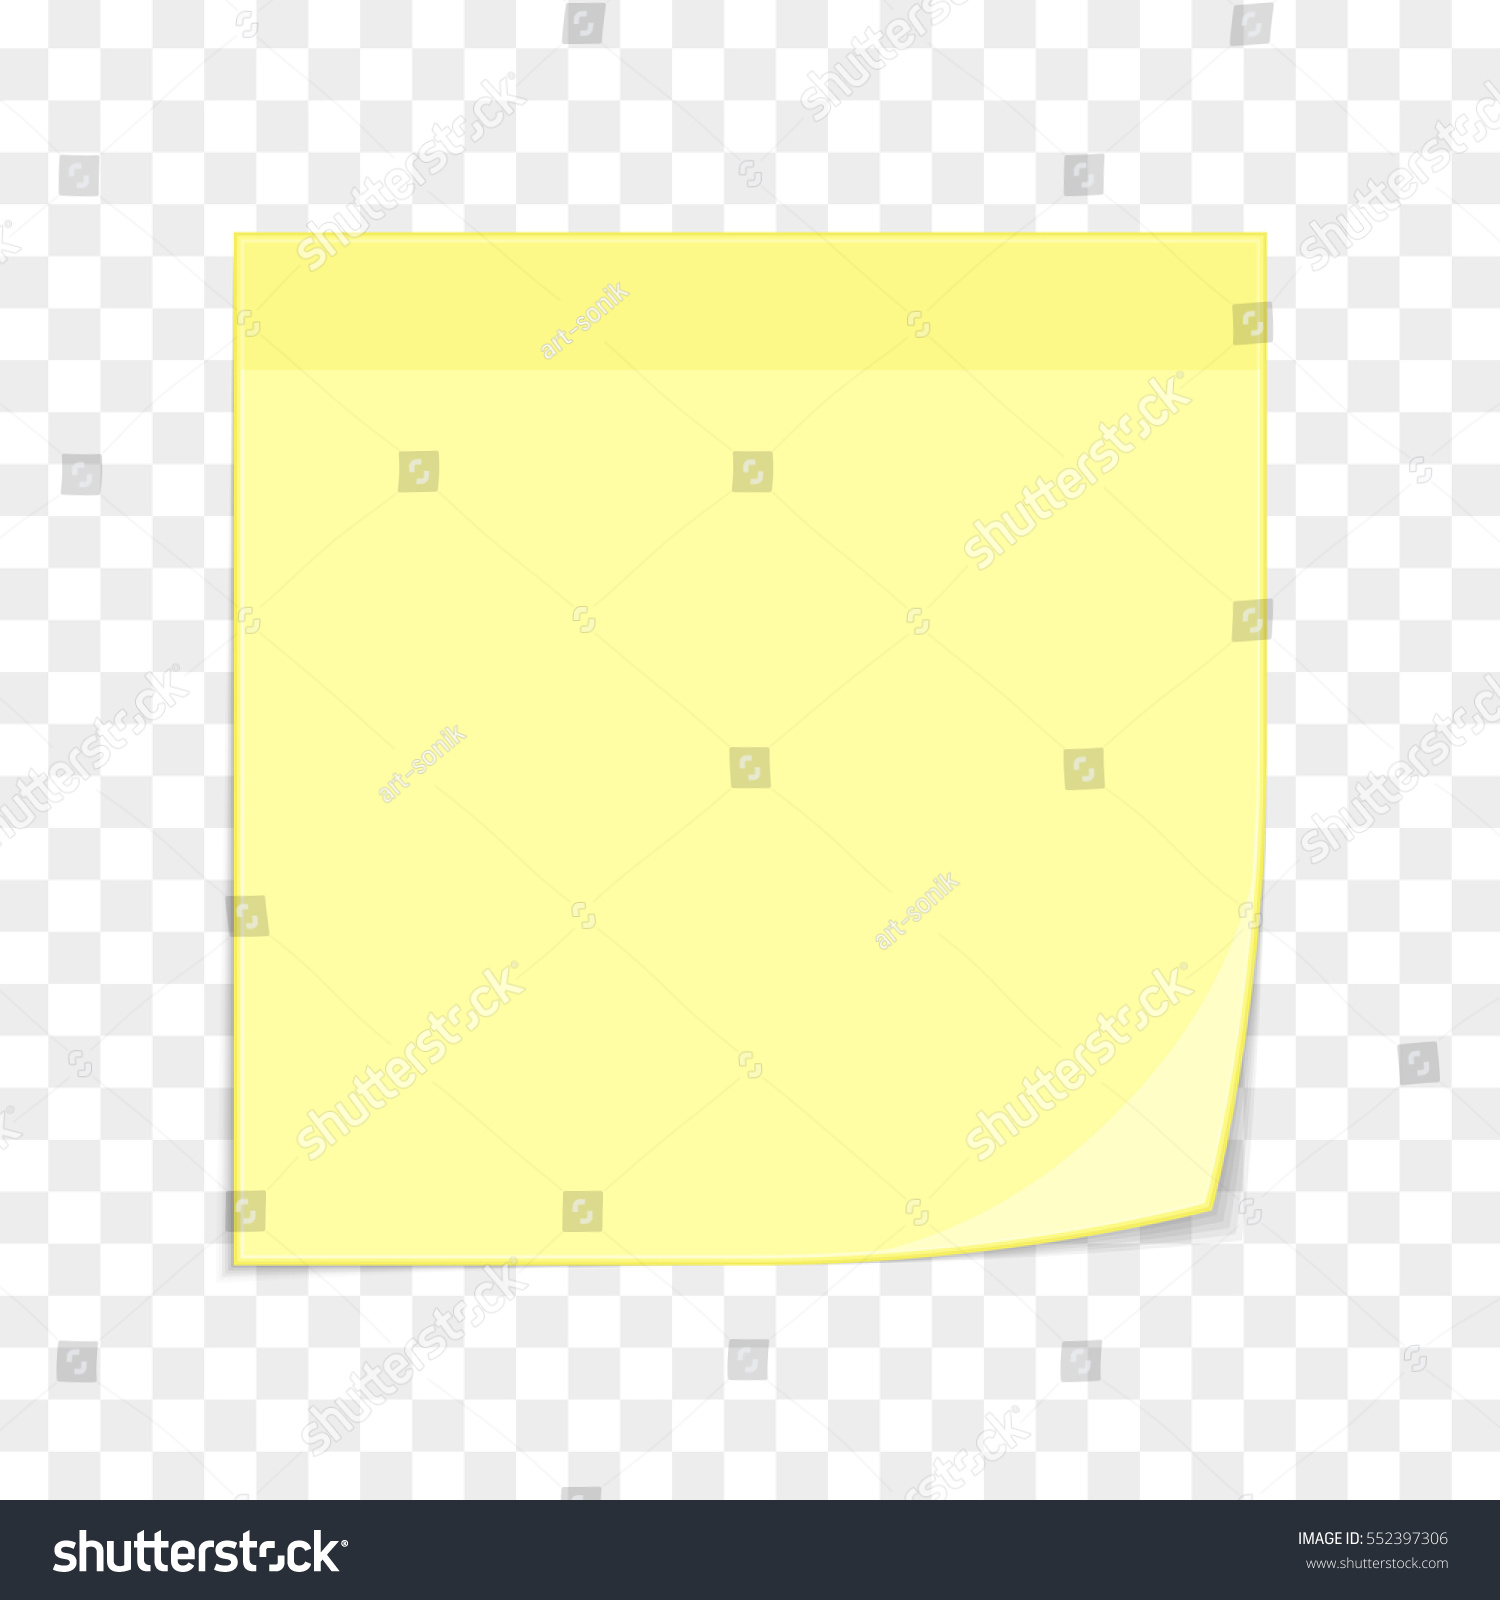 Notebook Paper Background For Word Word Payslip Template Stock Vector  Yellow Sticky Note Isolated On Transparent